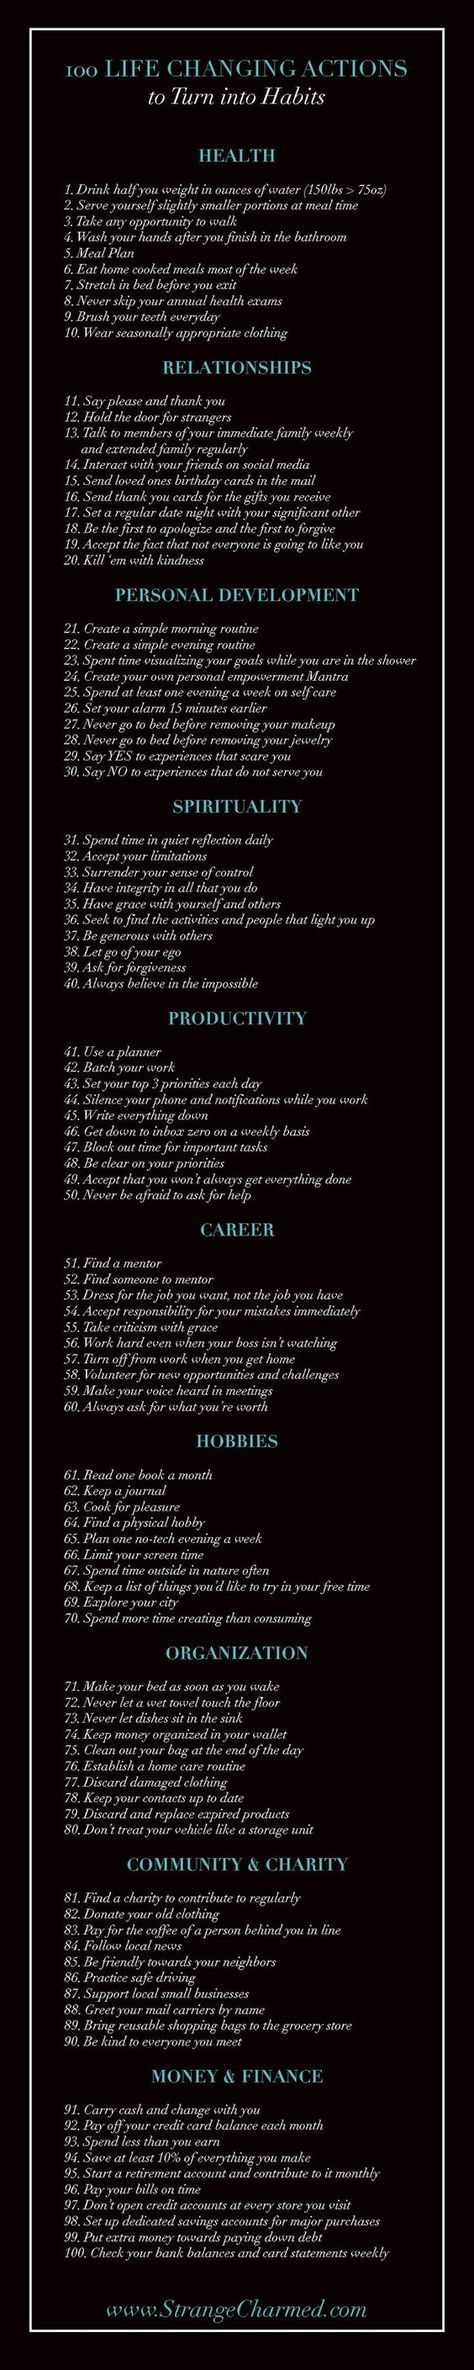 best ideas about change my life positive changes control your habits control your life try turning some of these 100 life changing